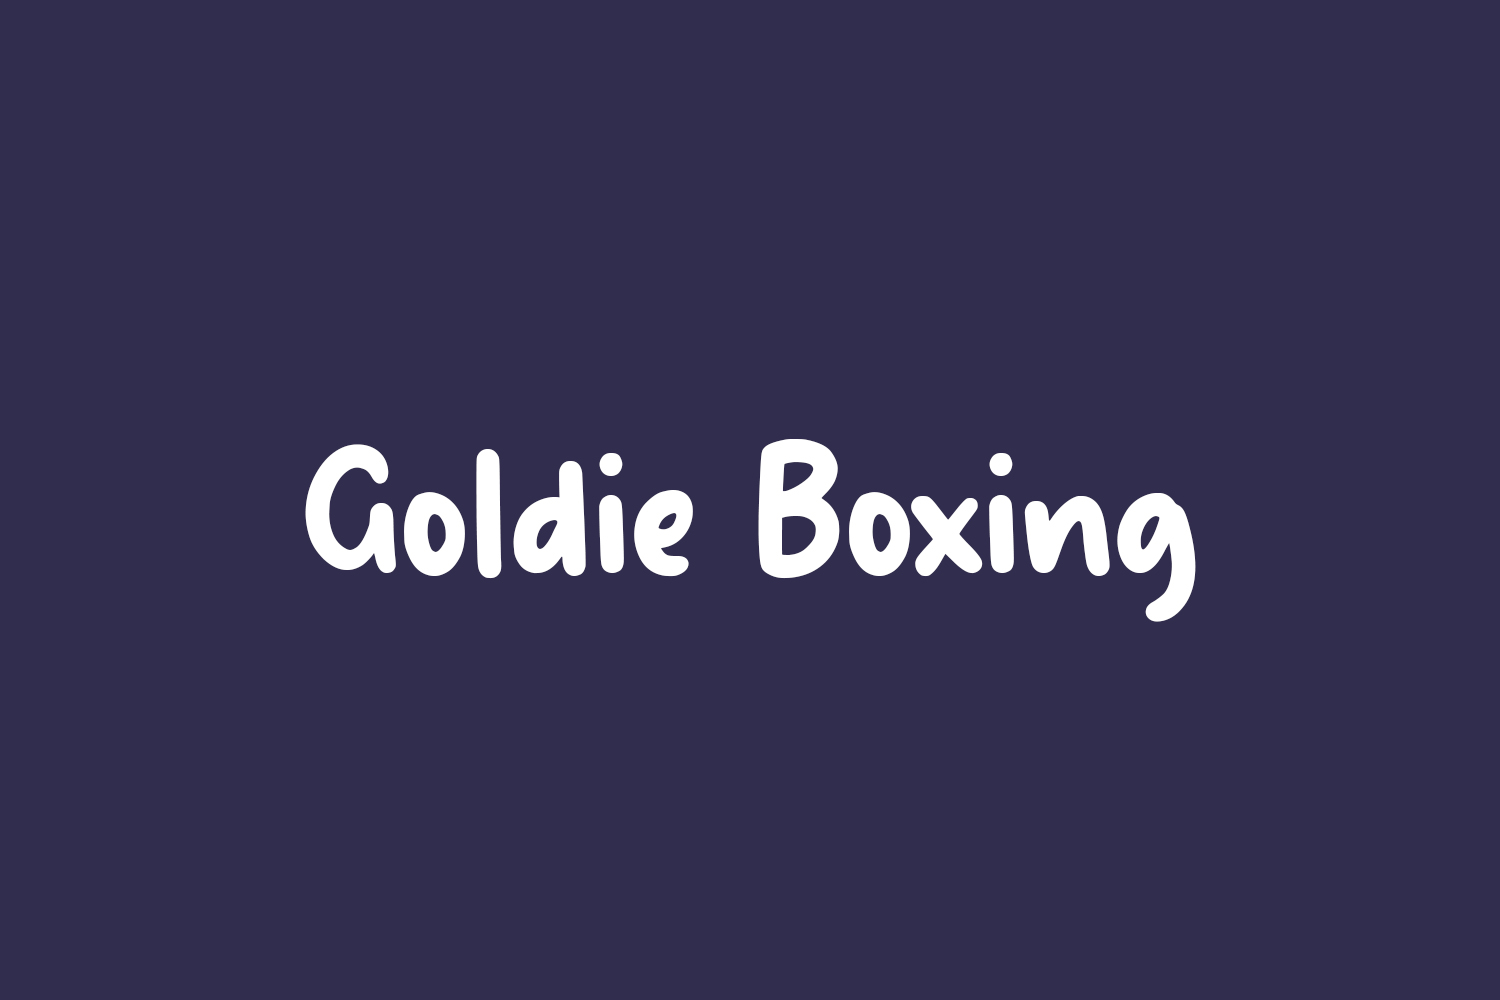 Goldie Boxing Free Font